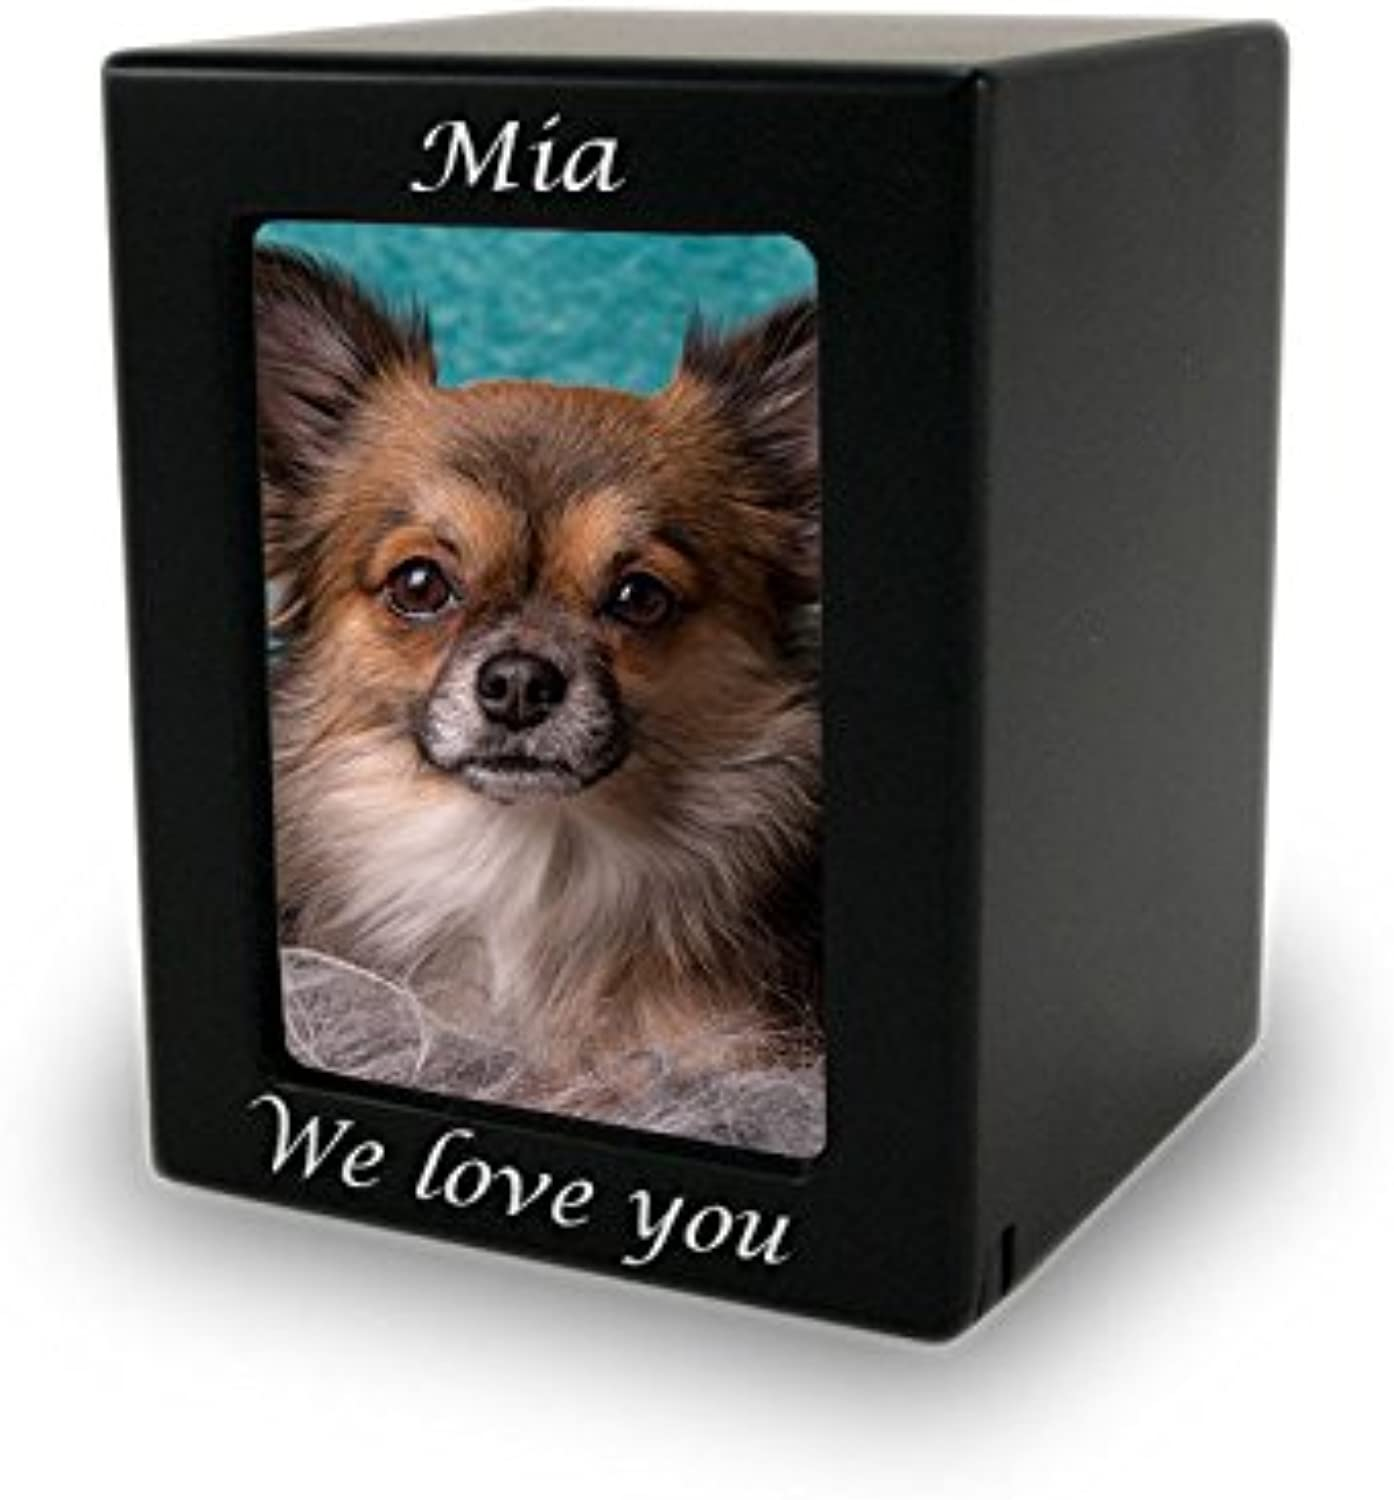 Photo Frame Wood Memorial Urn for Pets  Extra Small  Holds Up to 25 Cubic Inches of Ashes  Modern Black Cremation Urn for Cat, Dog  Engraving Sold Separately